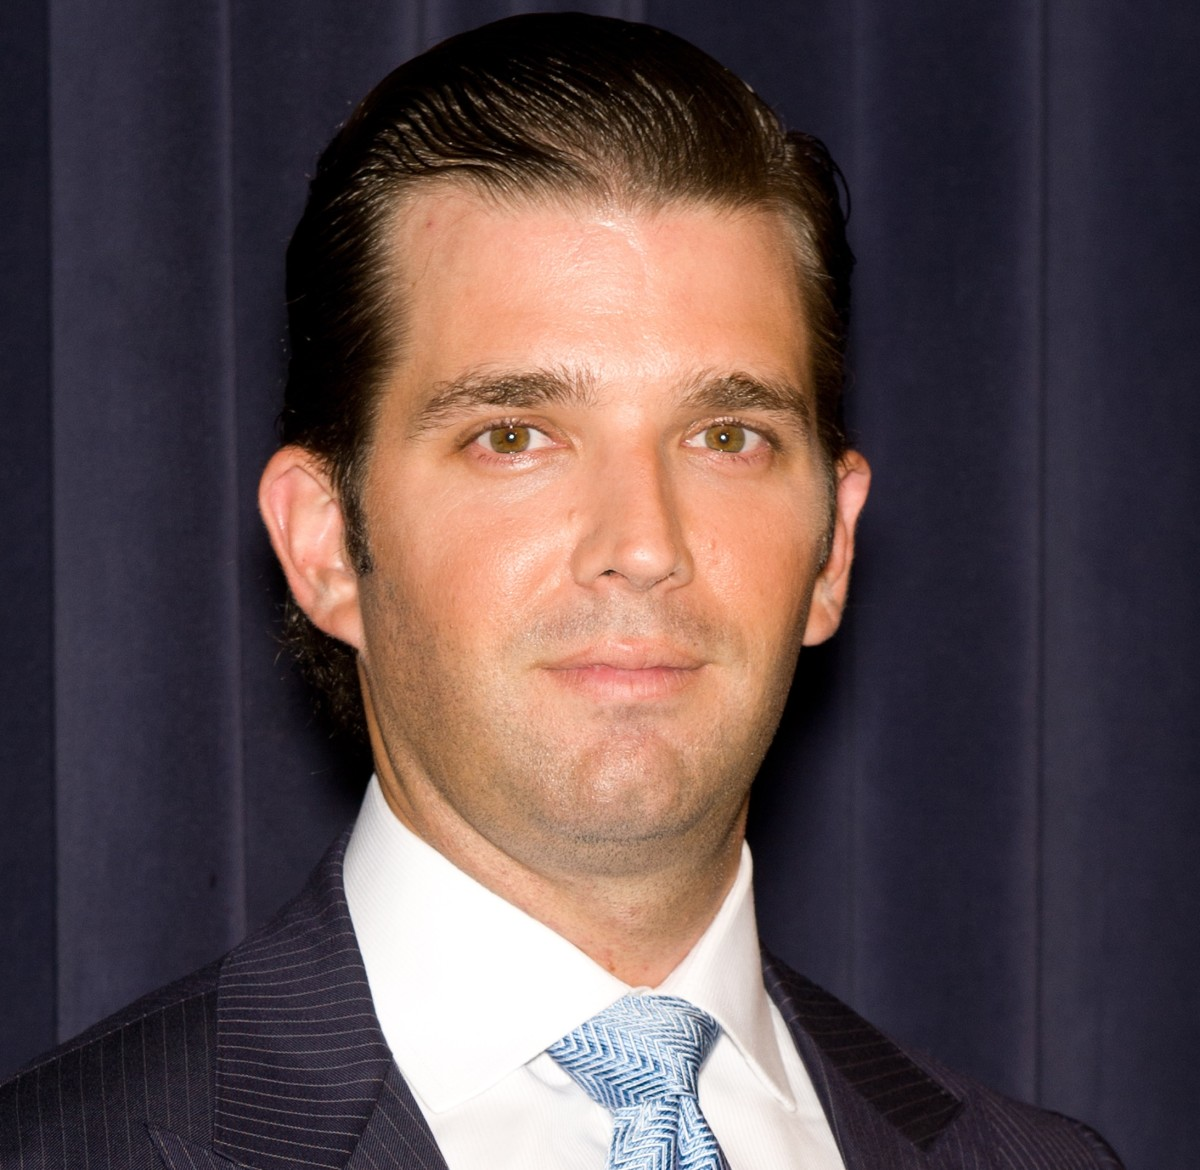 Donald Trump Jr. - Biography.com